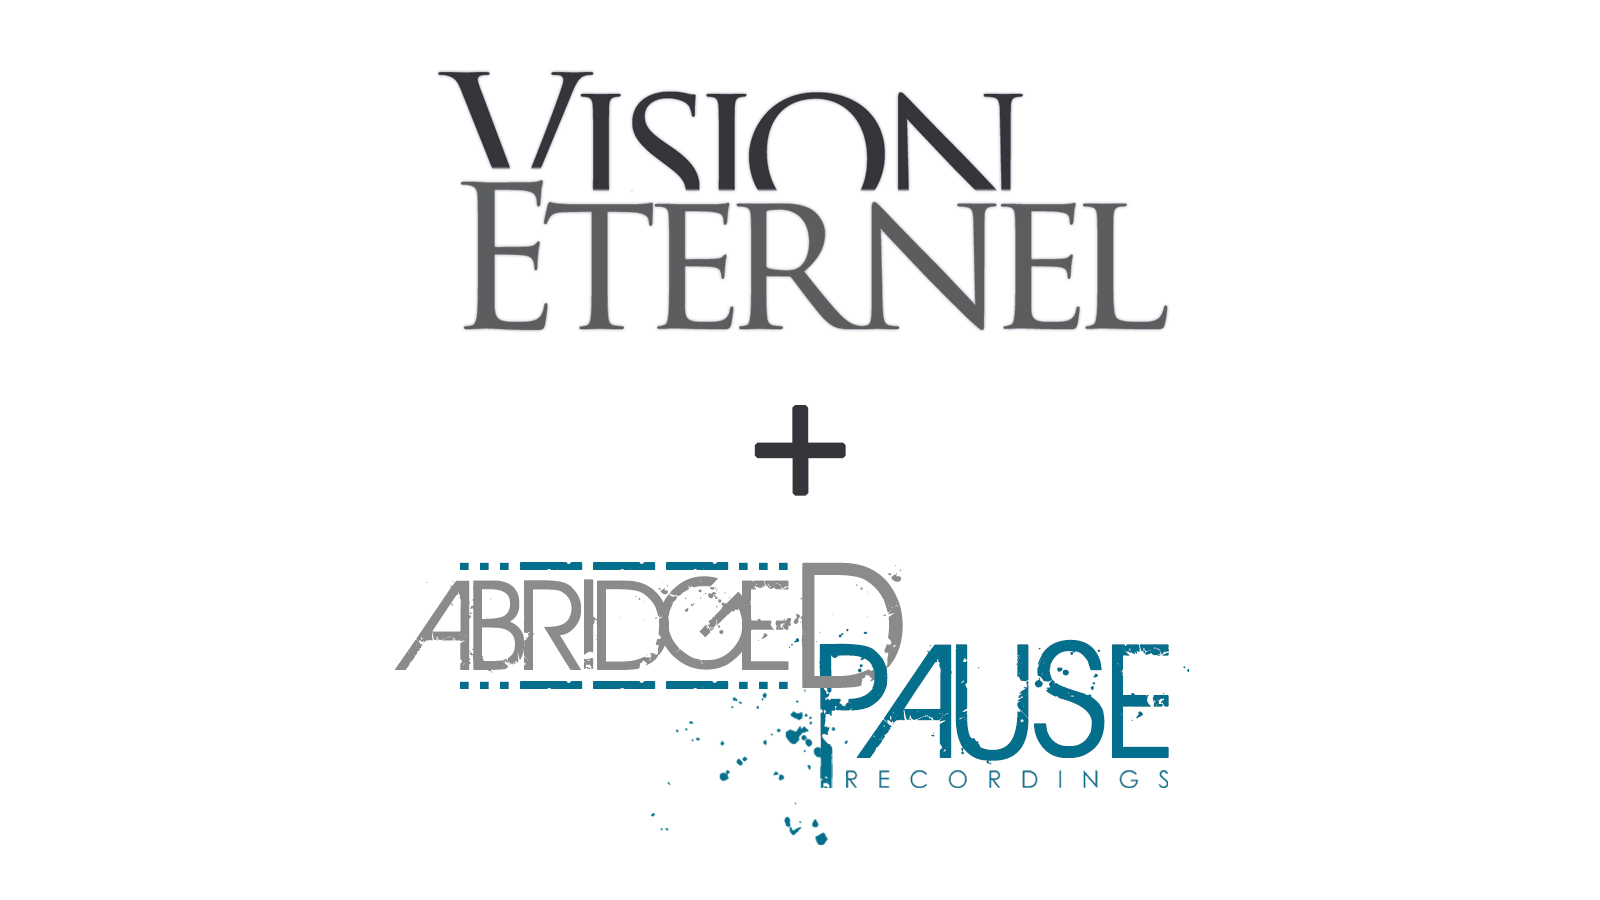 Vision Éternel Signs With Abridged Pause Recordings